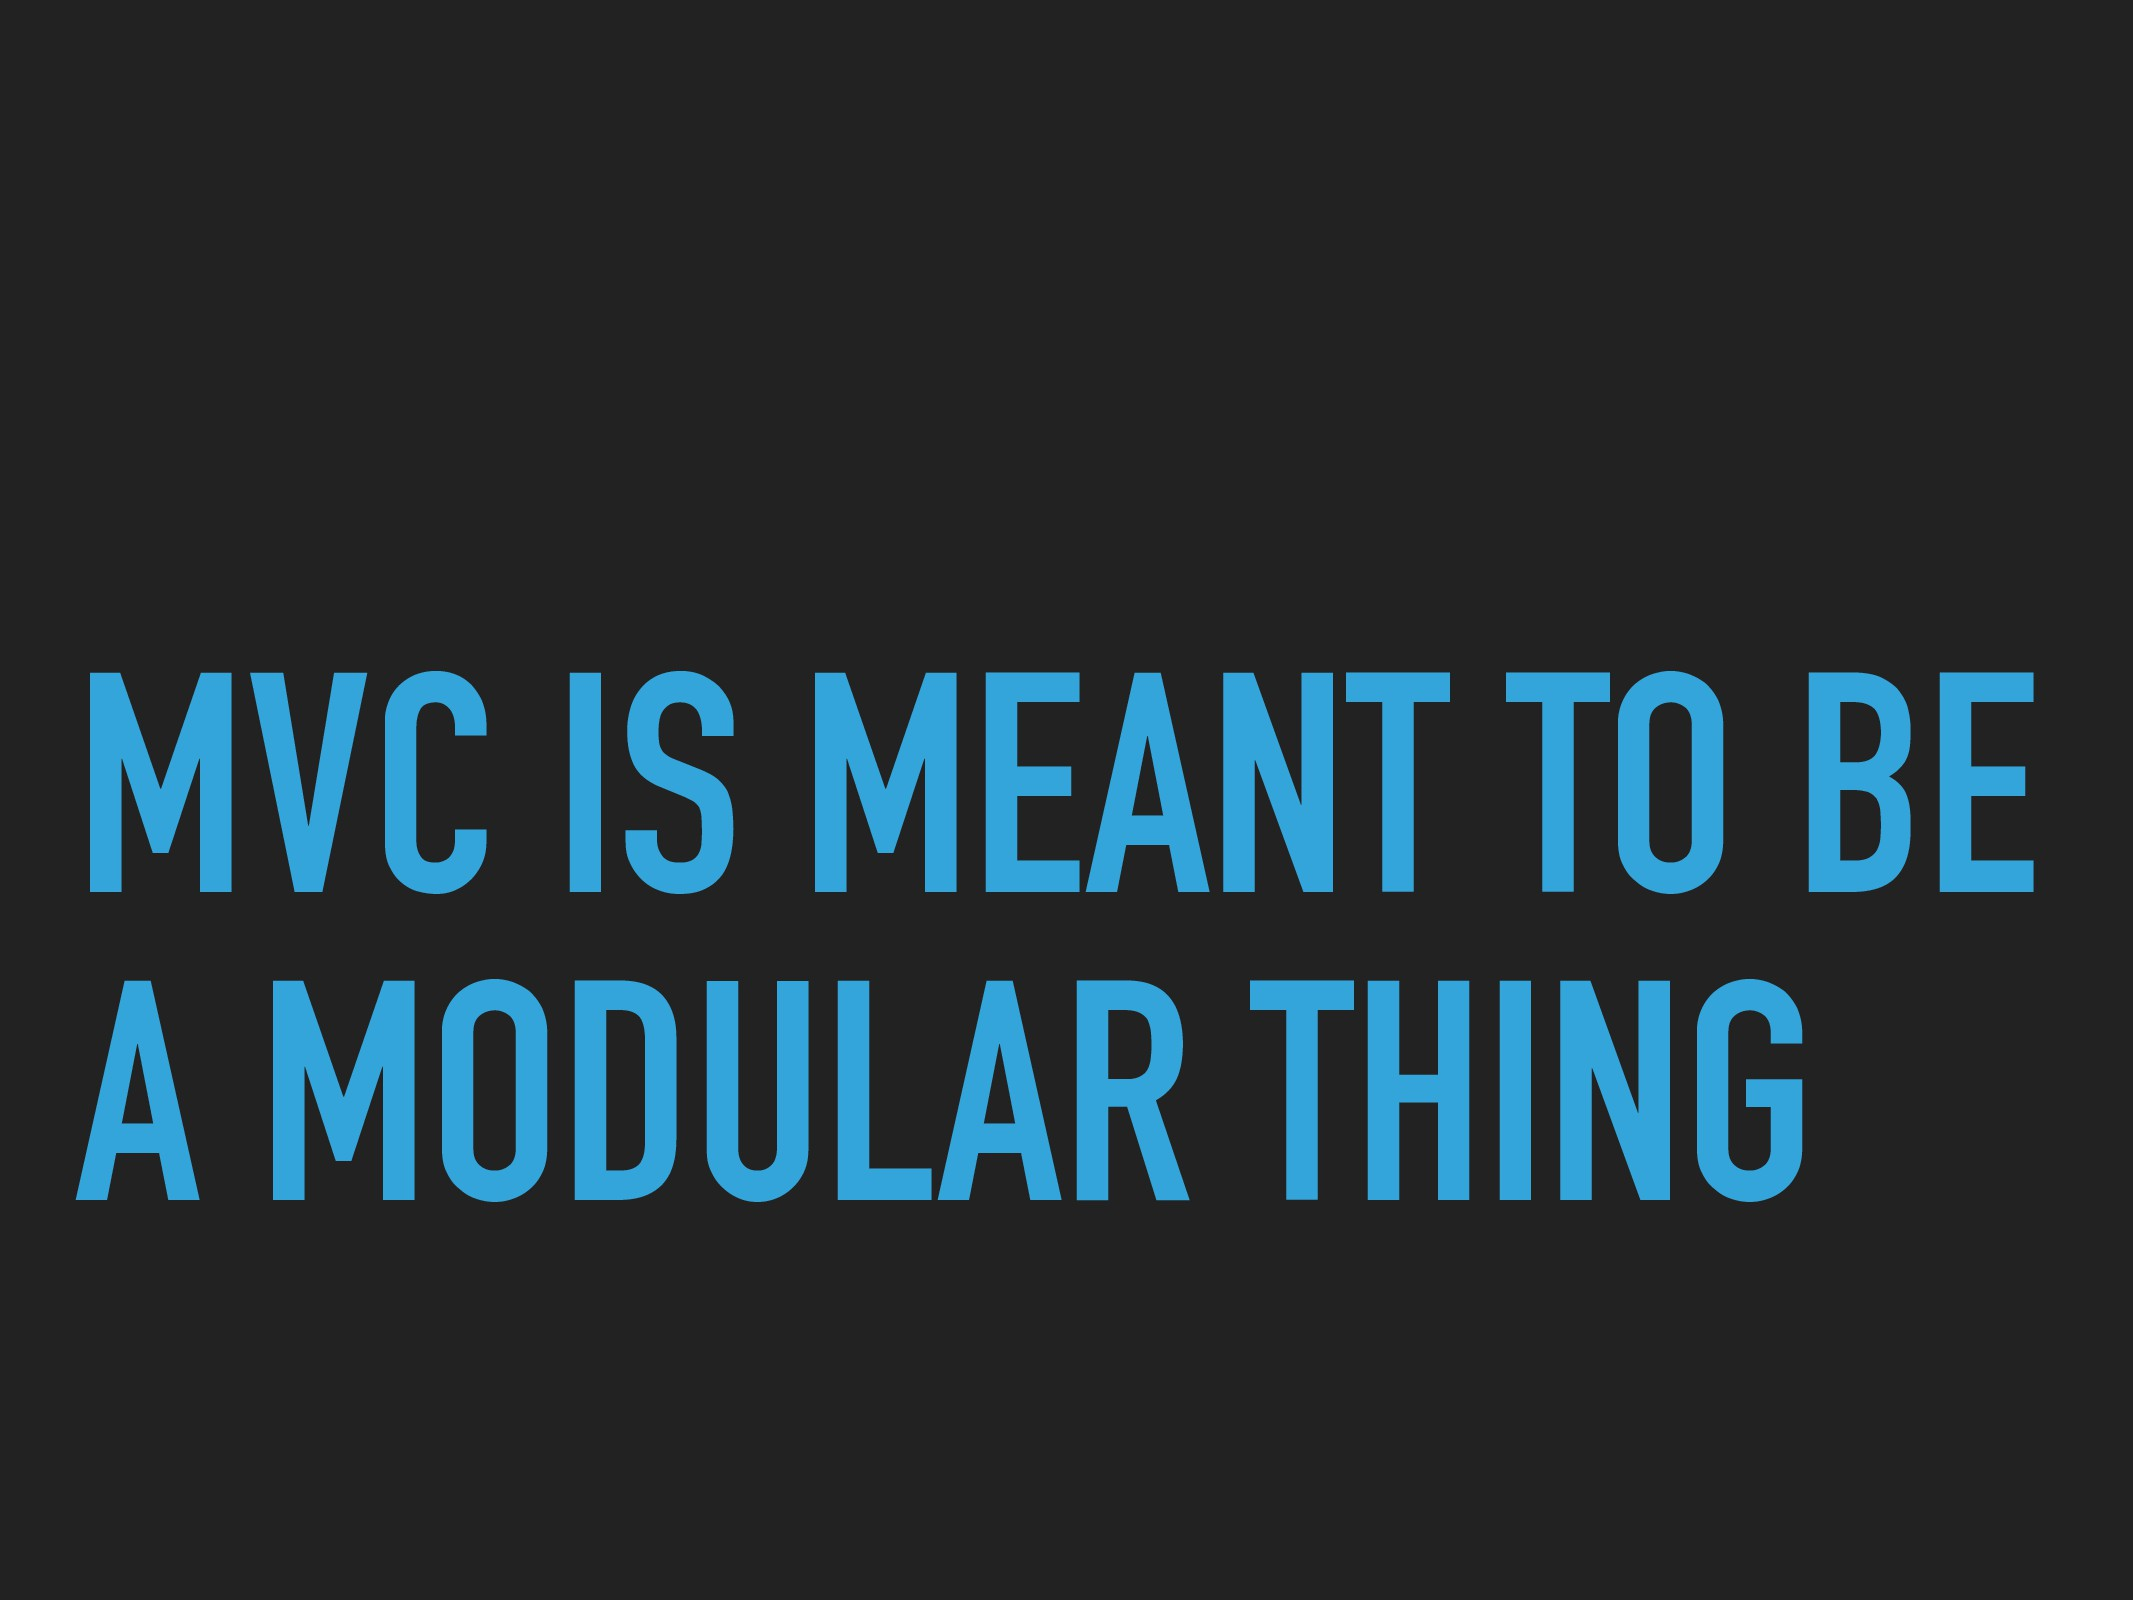 MVC IS MEANT TO BE A MODULAR THING